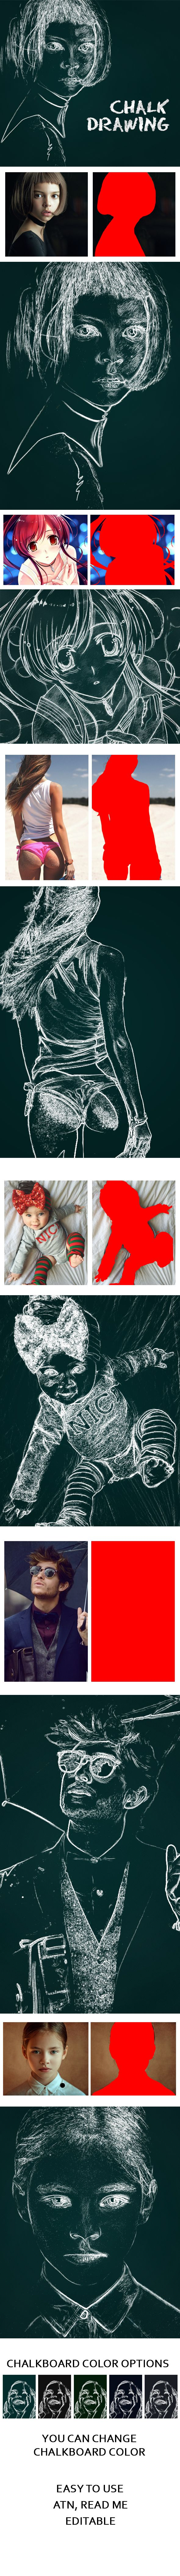 Chalk Drawing Effect - Photo Effects Actions